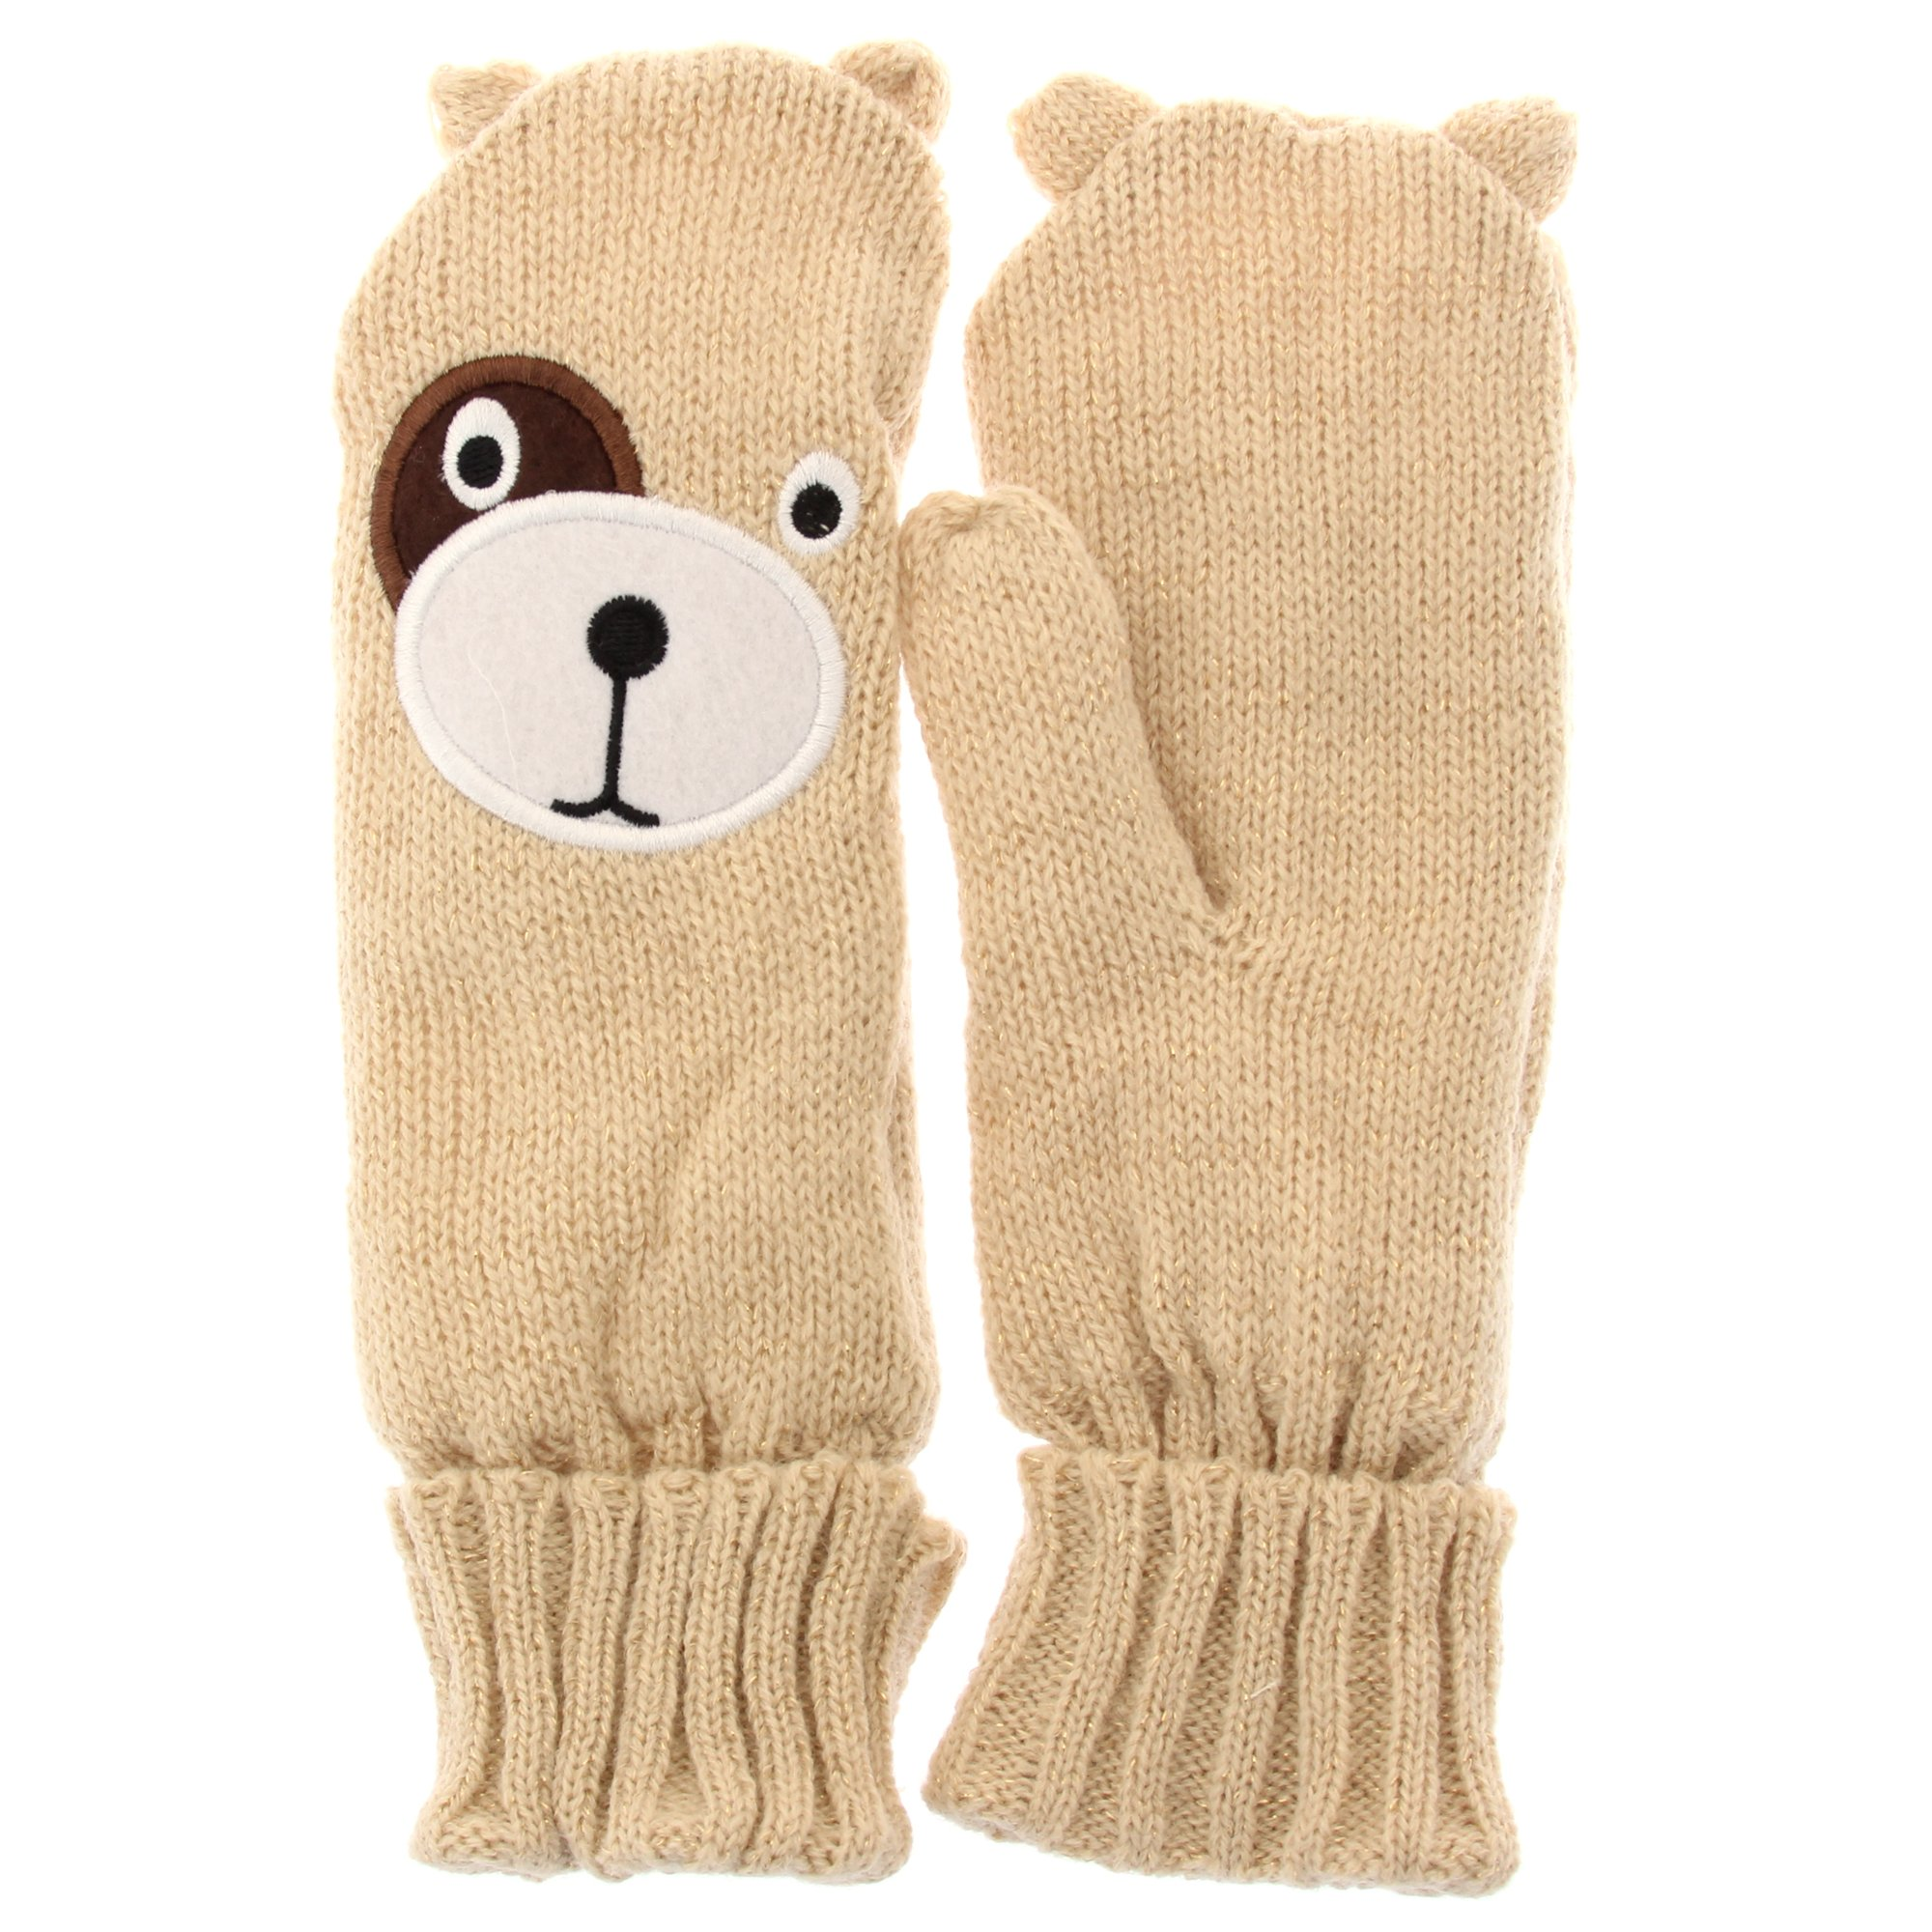 childrens girls teddy bear winter mittens ebay. Black Bedroom Furniture Sets. Home Design Ideas